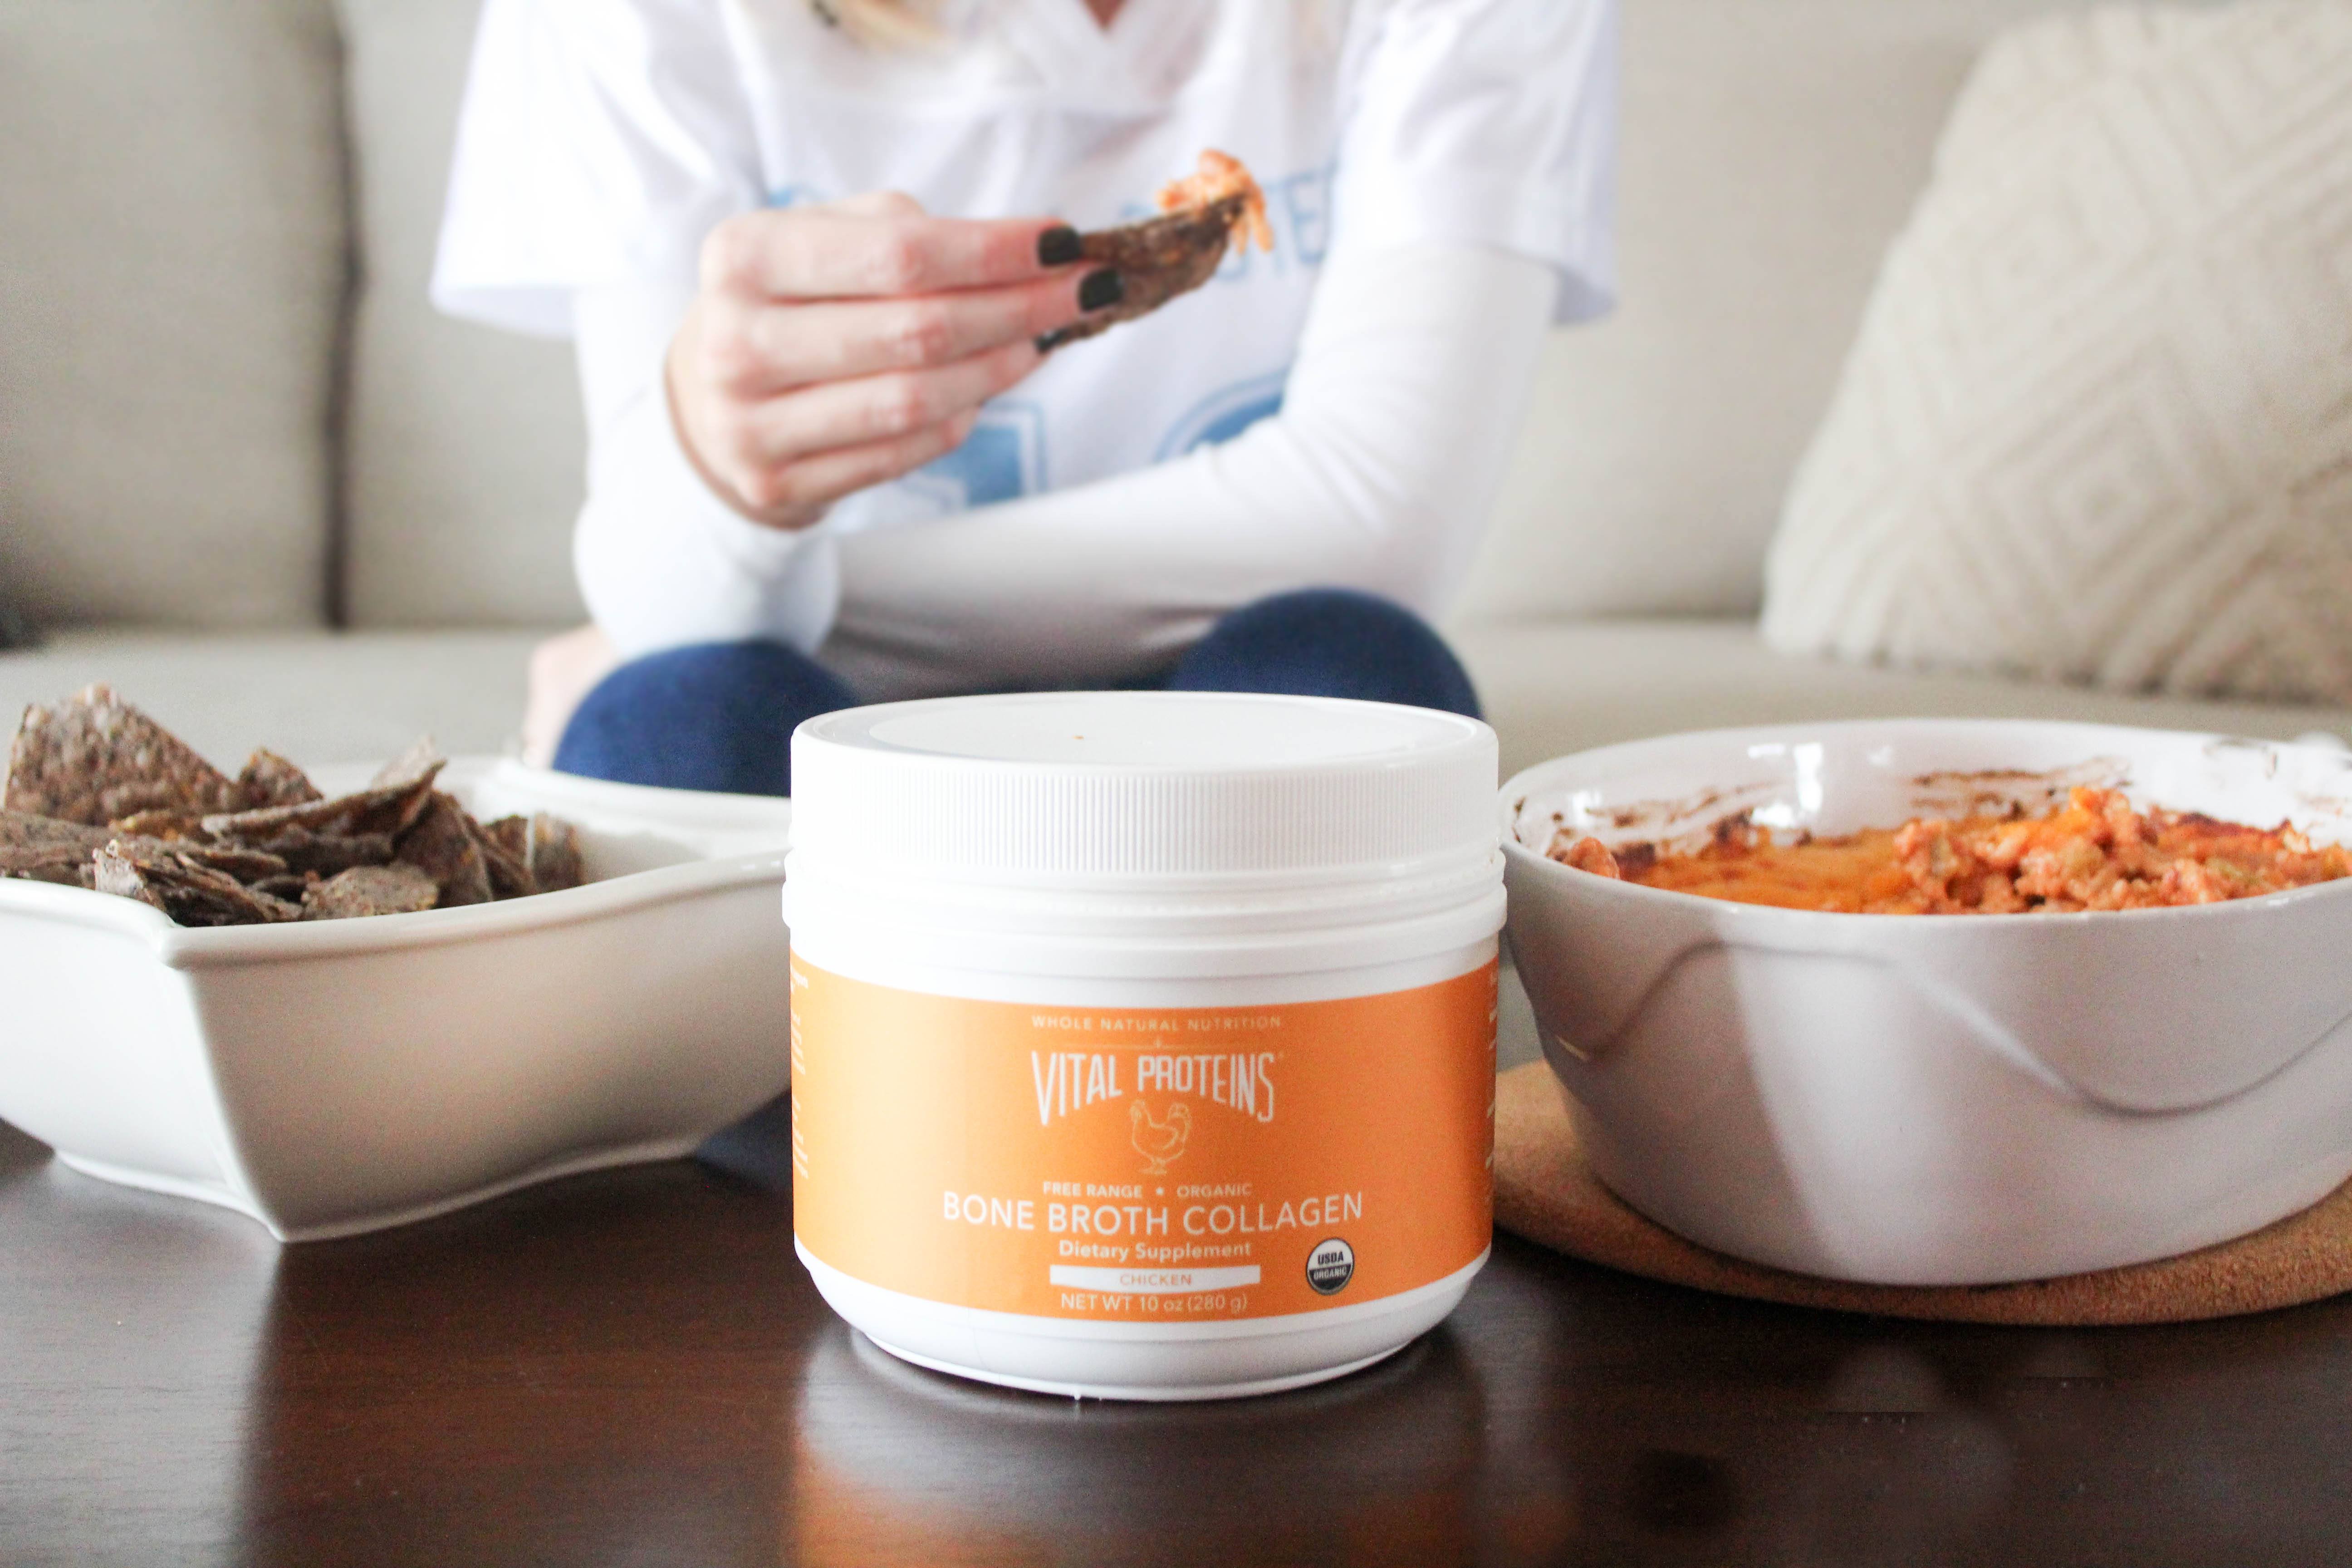 GAMEDAY Dip with Vital Proteins